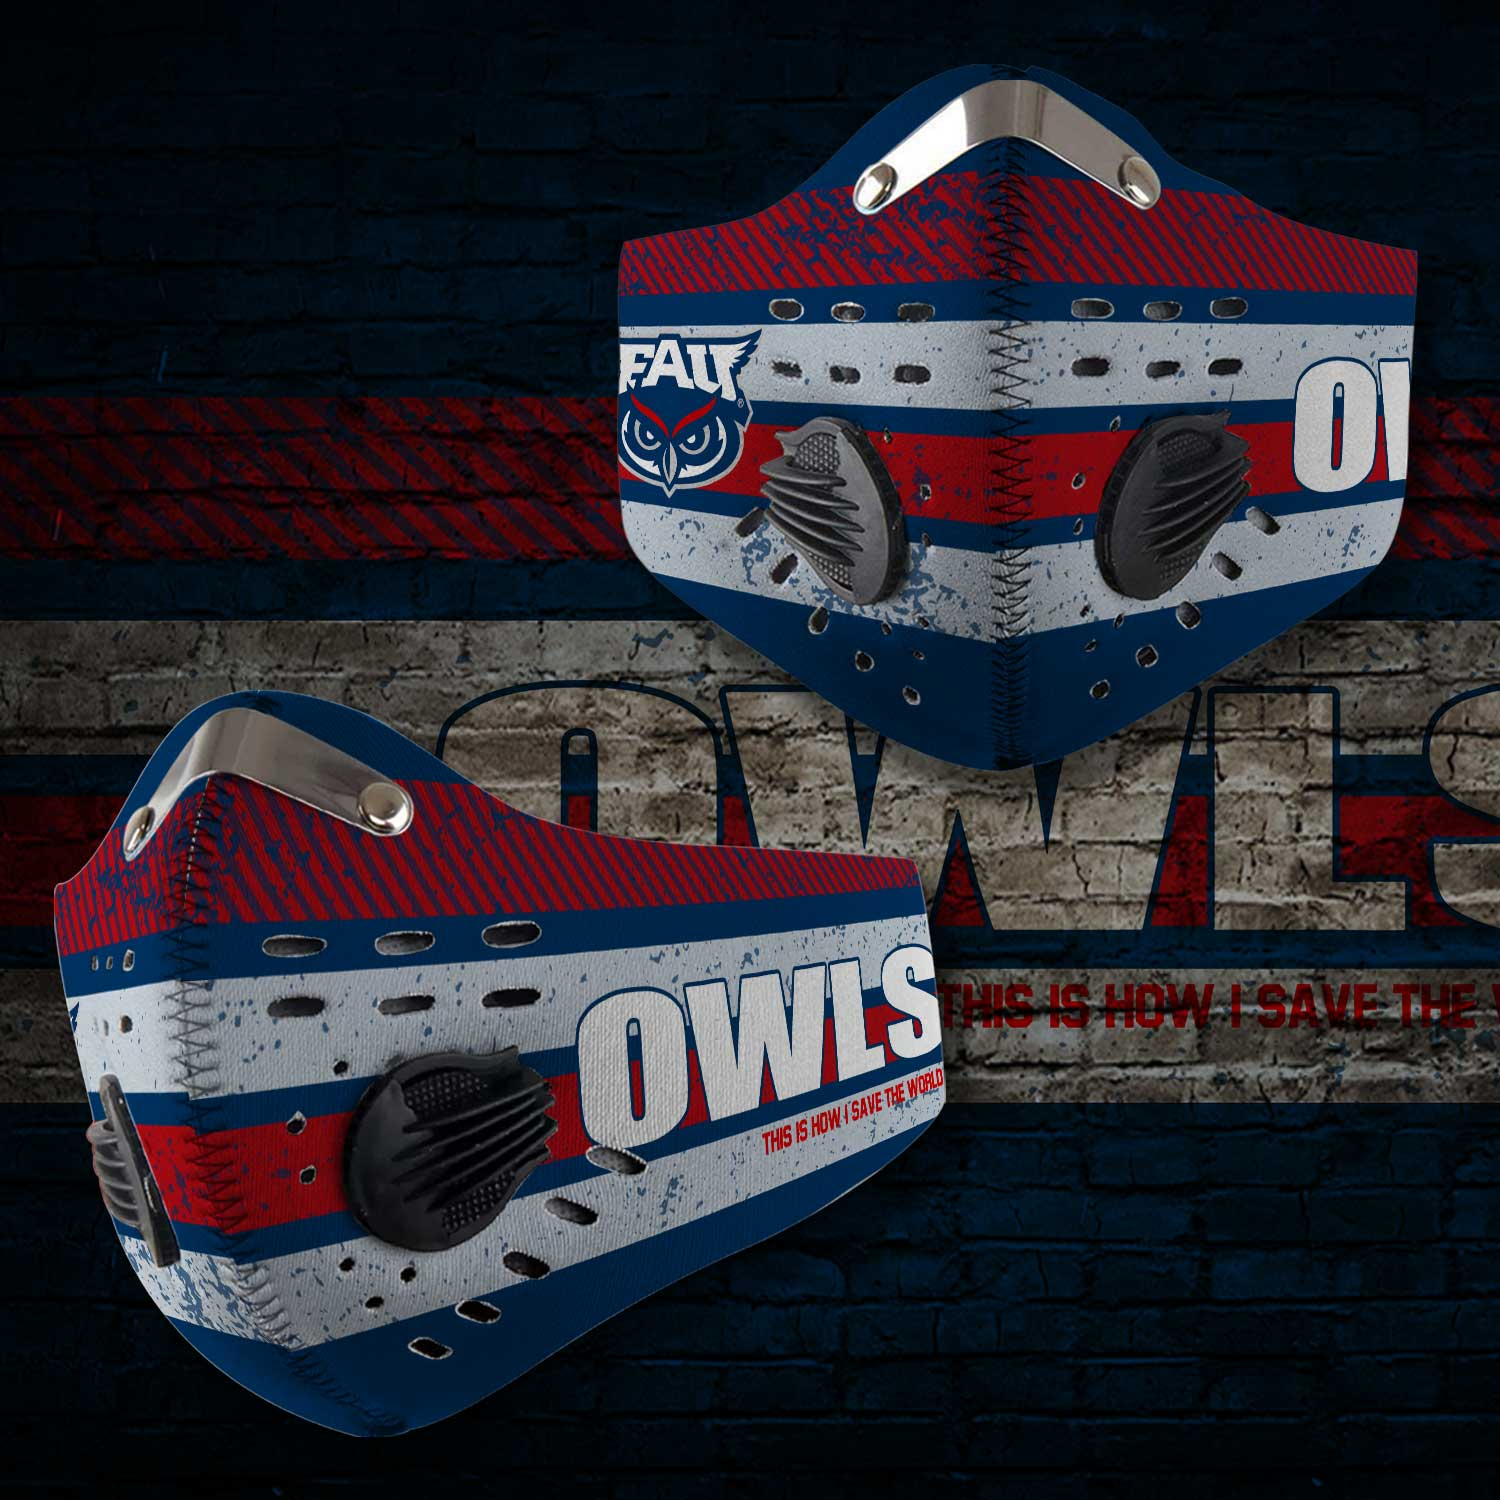 Florida atlantic owls this is how i save the world face mask 2